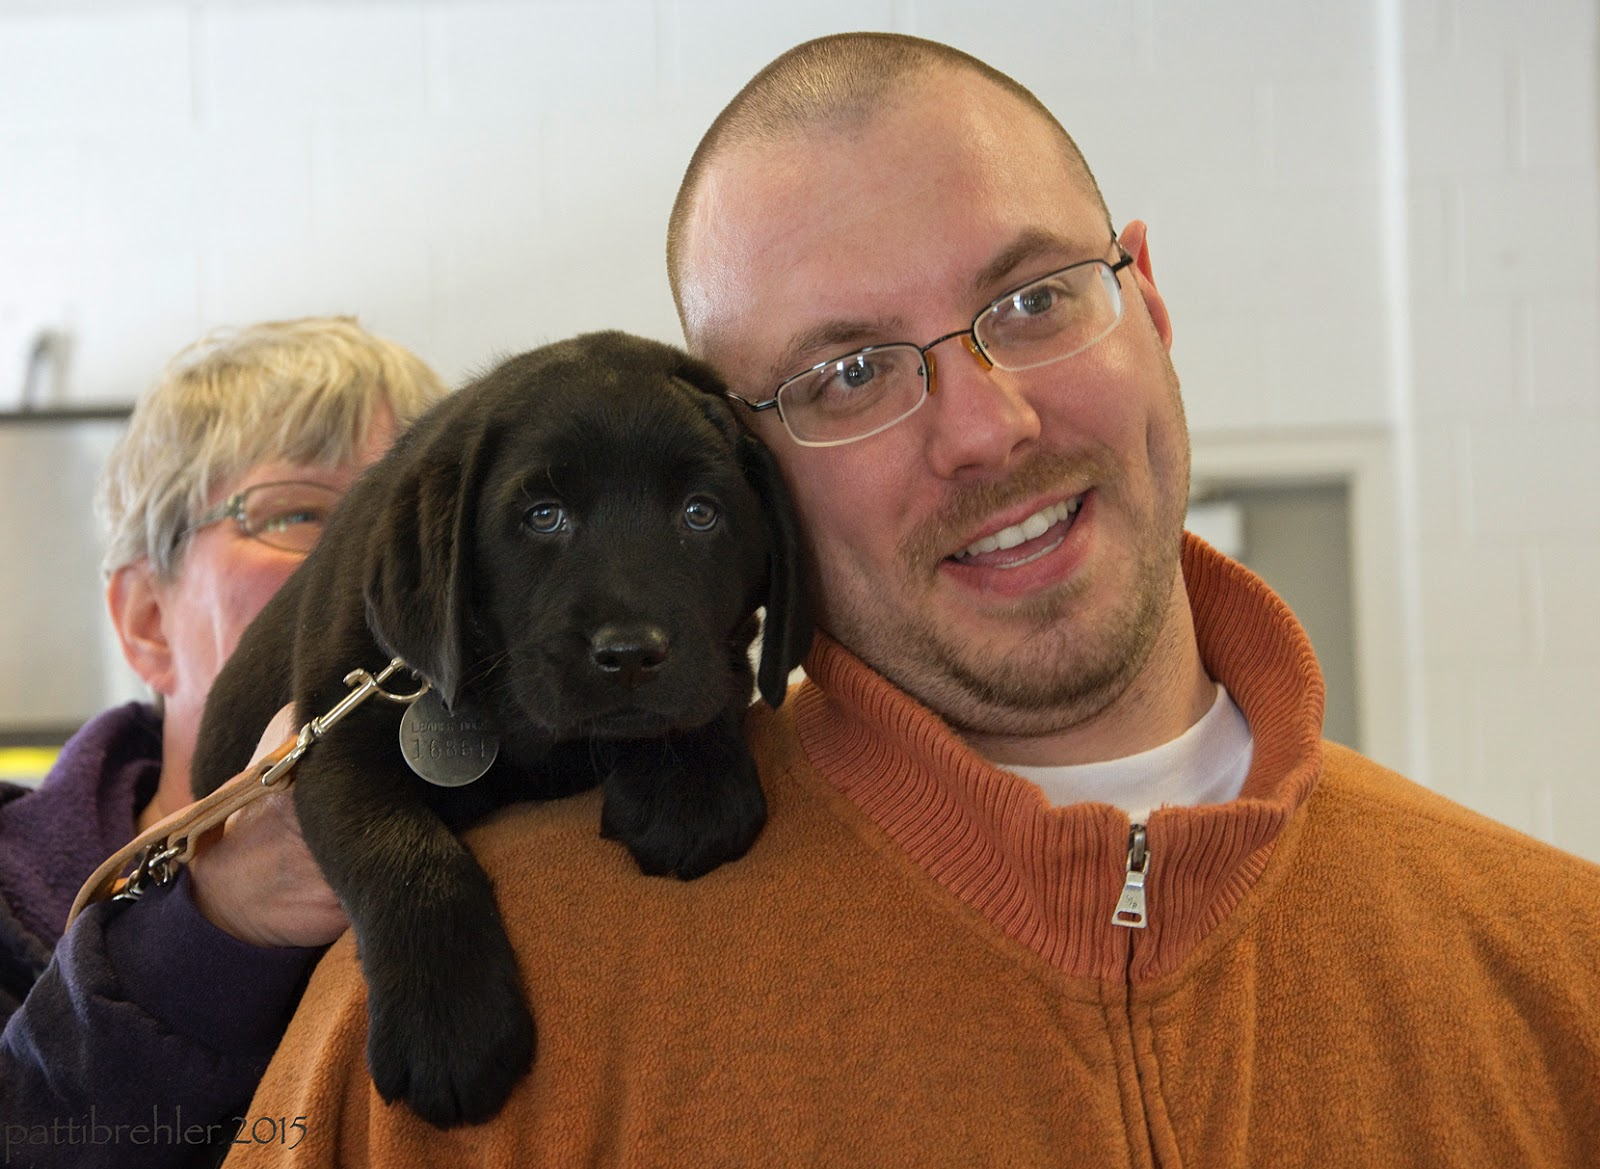 The woman who was approaching is handing a small black lab puppy over the right shoulder of the man wearing an orange jacket. The man is leaning his head to his right against the puppy's head. The puppy's front paws are resting on the man's shoulder.